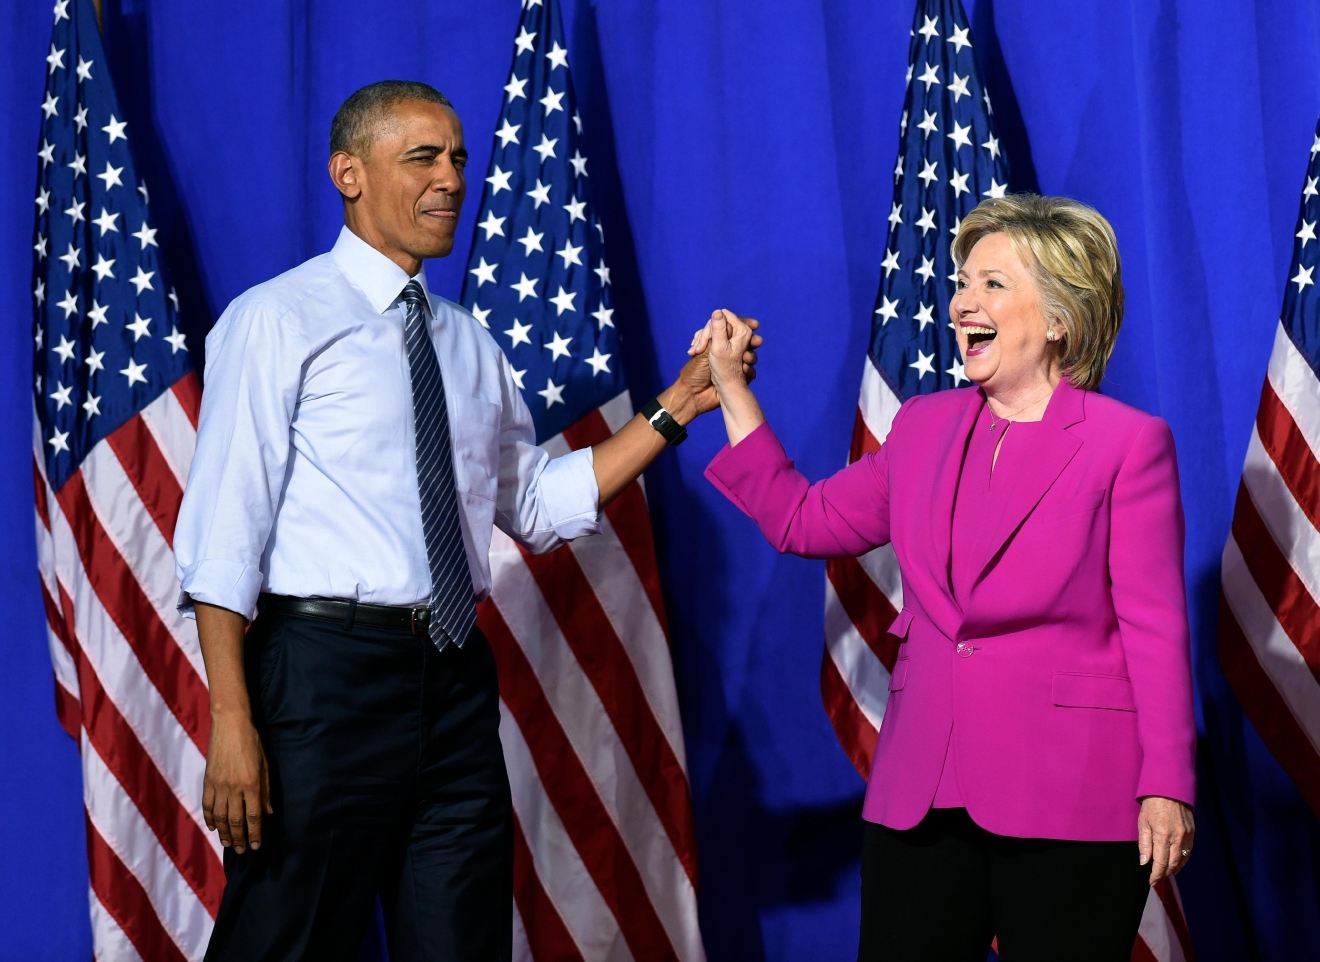 President Barack Obama and Democratic presidential candidate Hillary Clinton arrive at a campaign event at the Charlotte Convention Center in Charlotte, N.C., Tuesday, July 5, 2016. Obama is spending the afternoon campaigning for Clinton. (AP Photo/Susan Walsh)